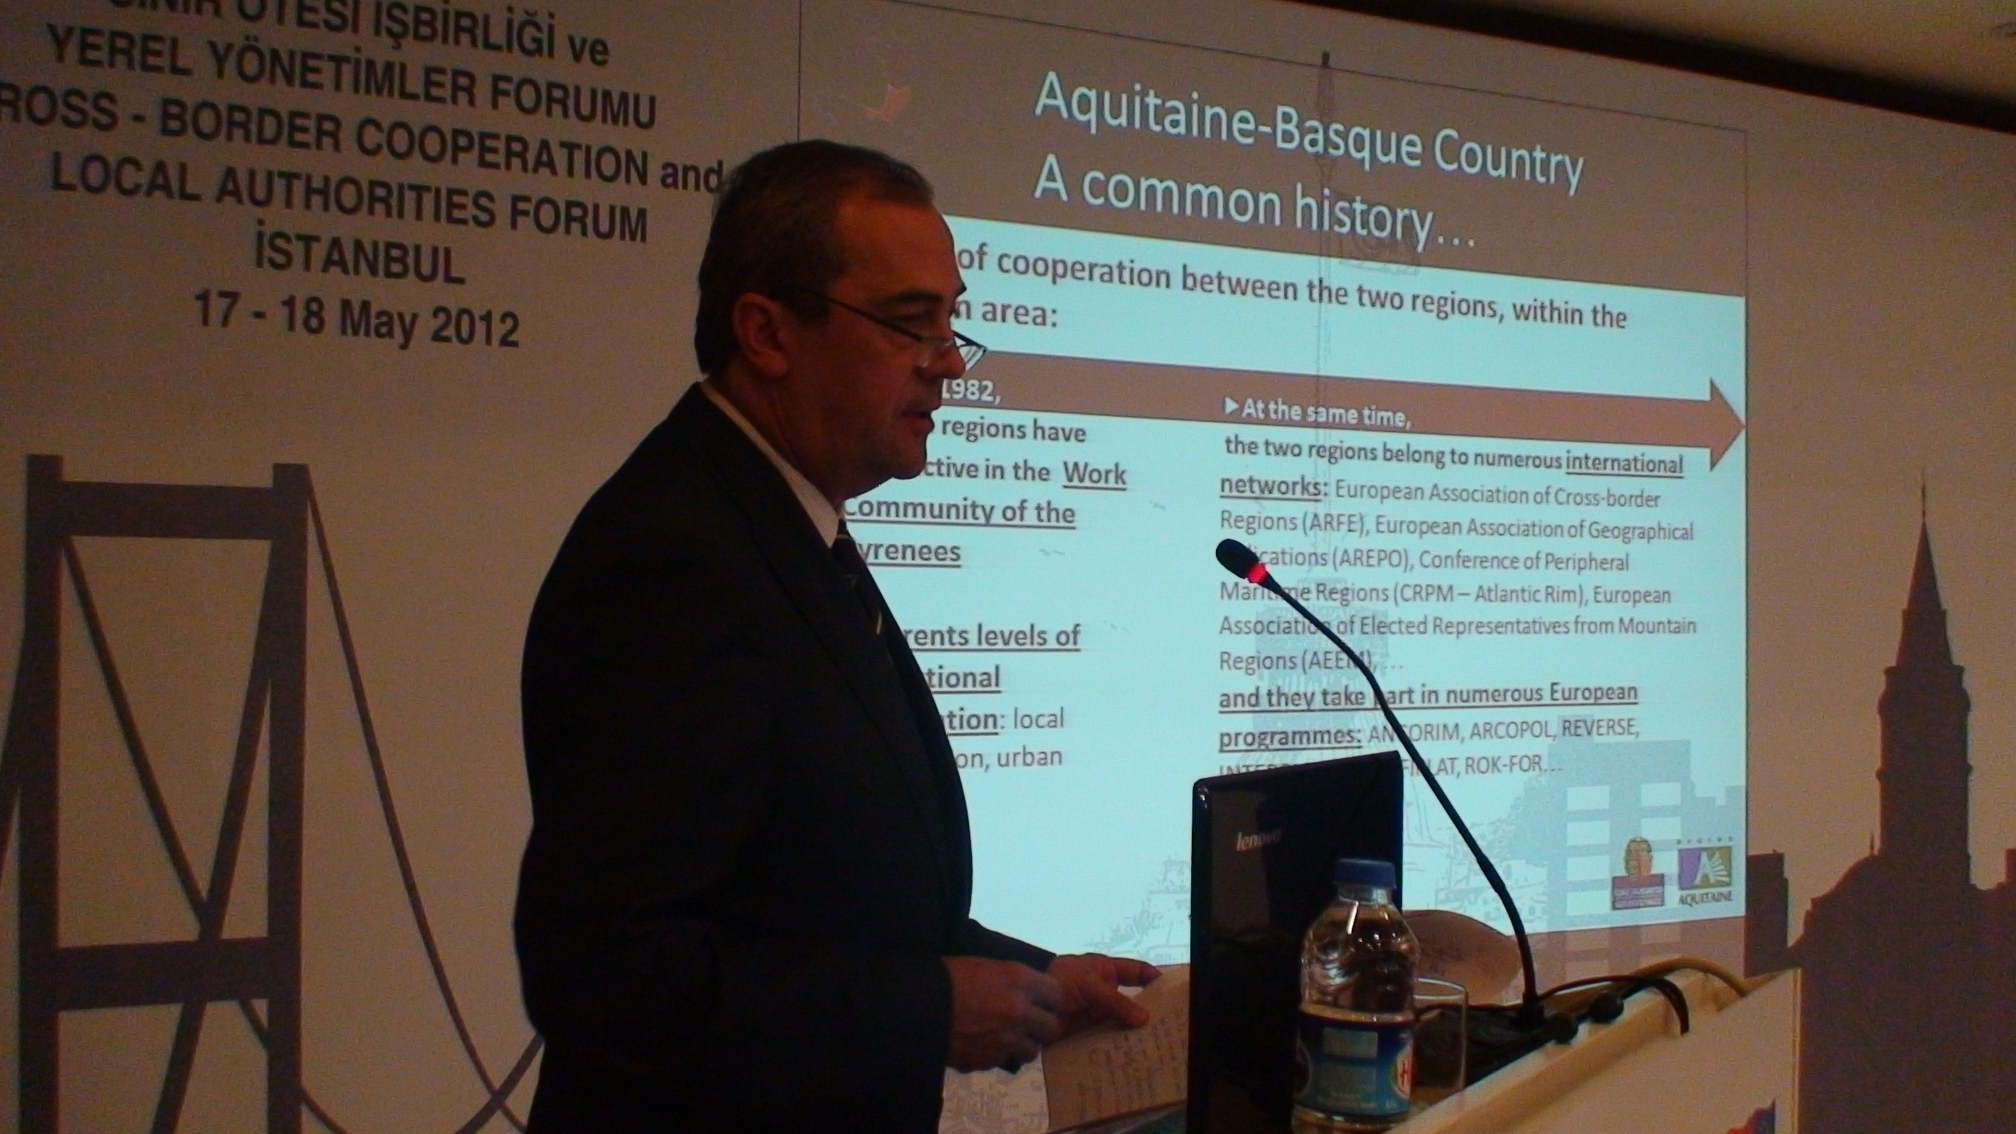 The Basque Government showcases its cross-border strategy with Aquitaine in Istanbul